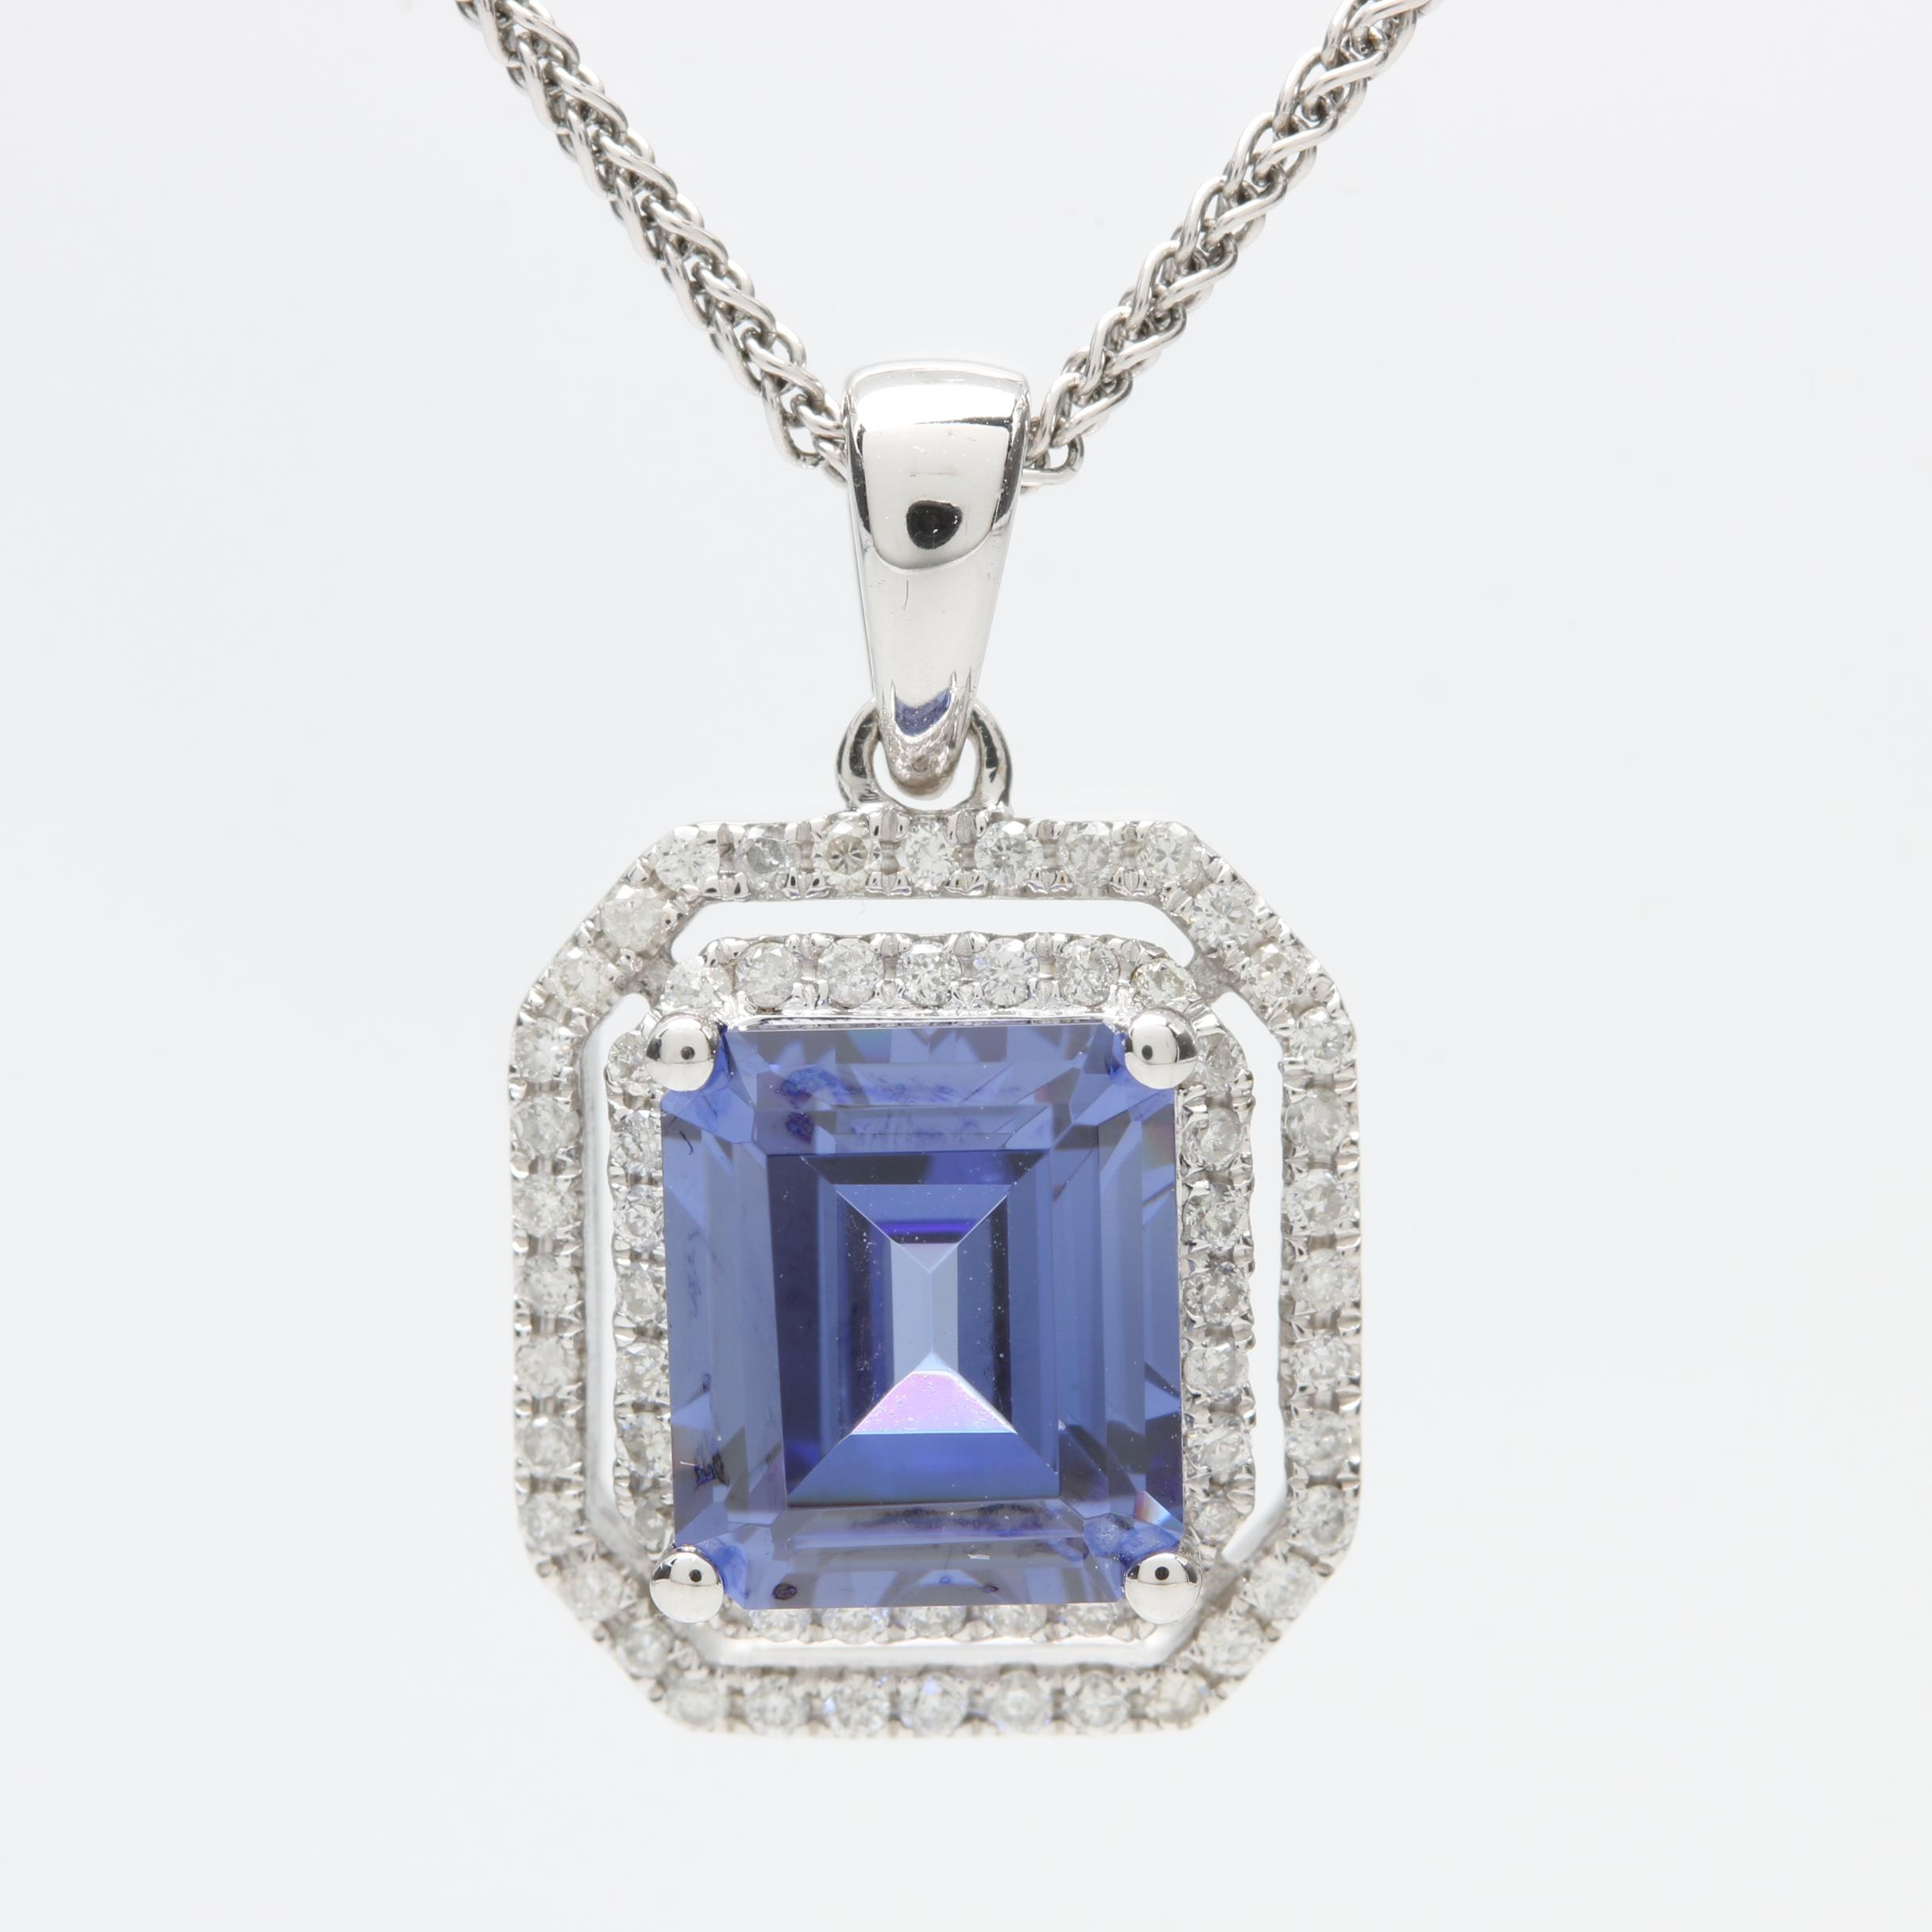 18K White Gold Cubic Zirconia and Diamond Necklace